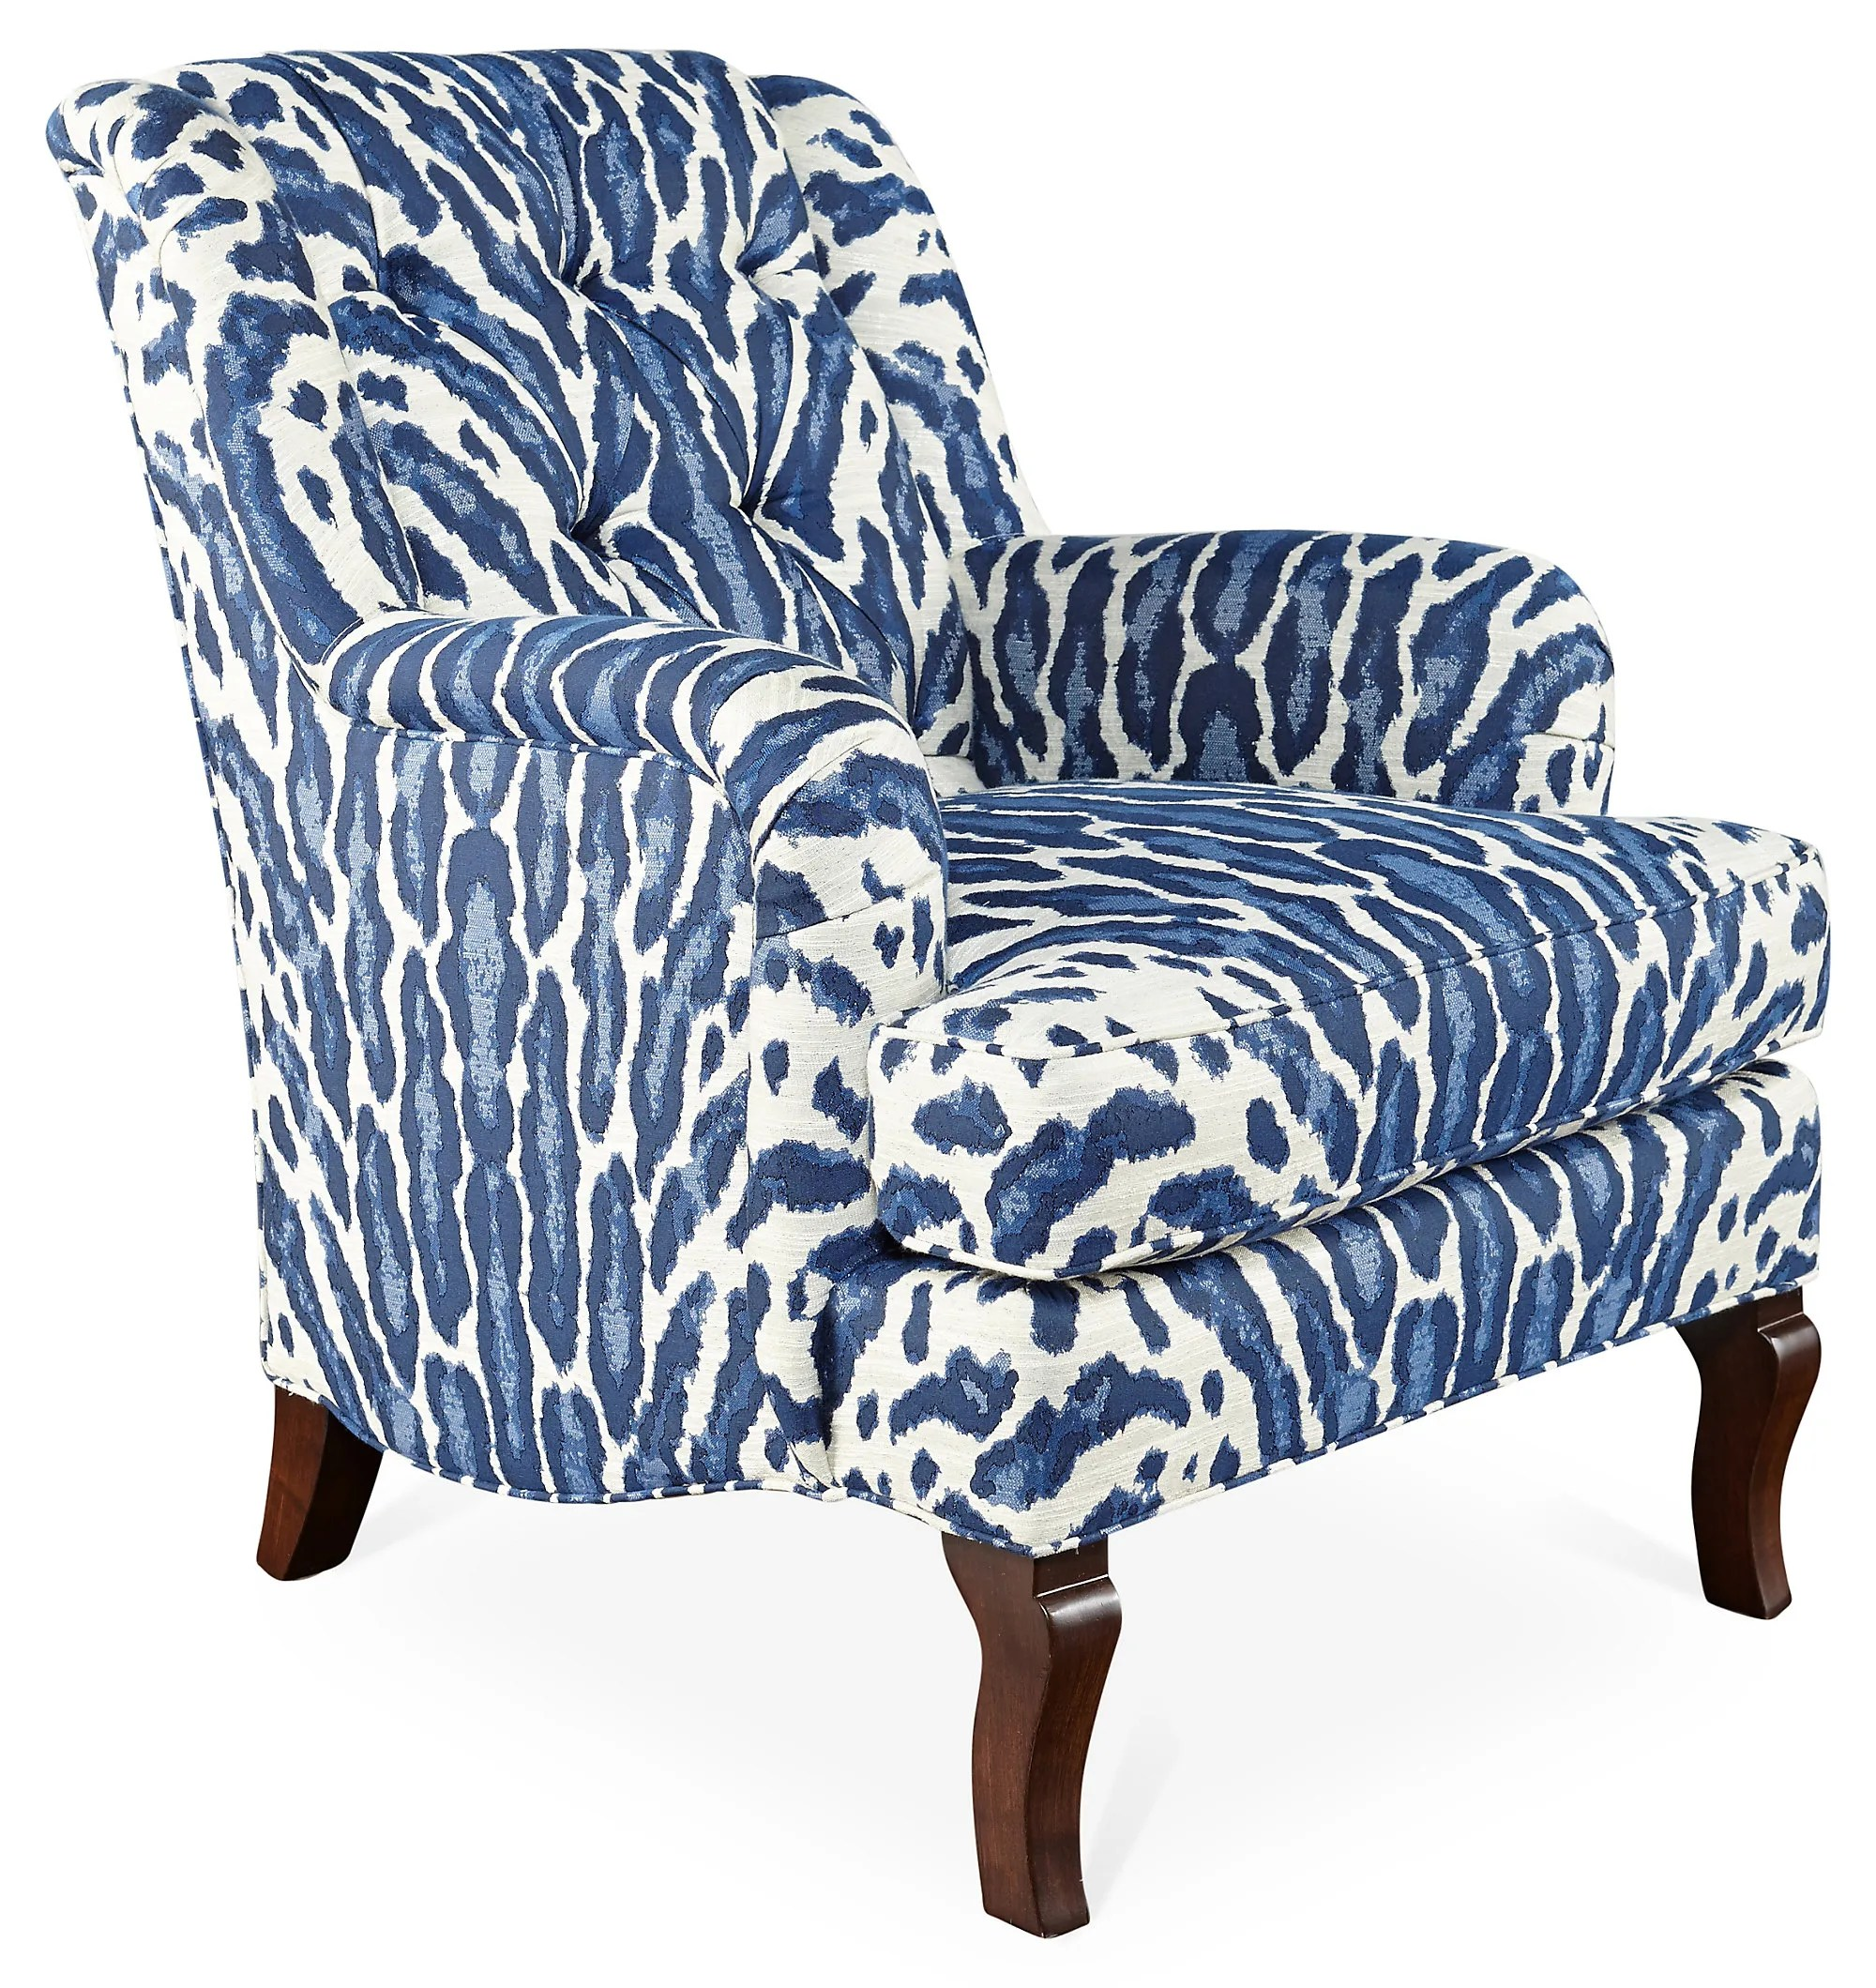 michael-thomas-blue-leopard-club-chair